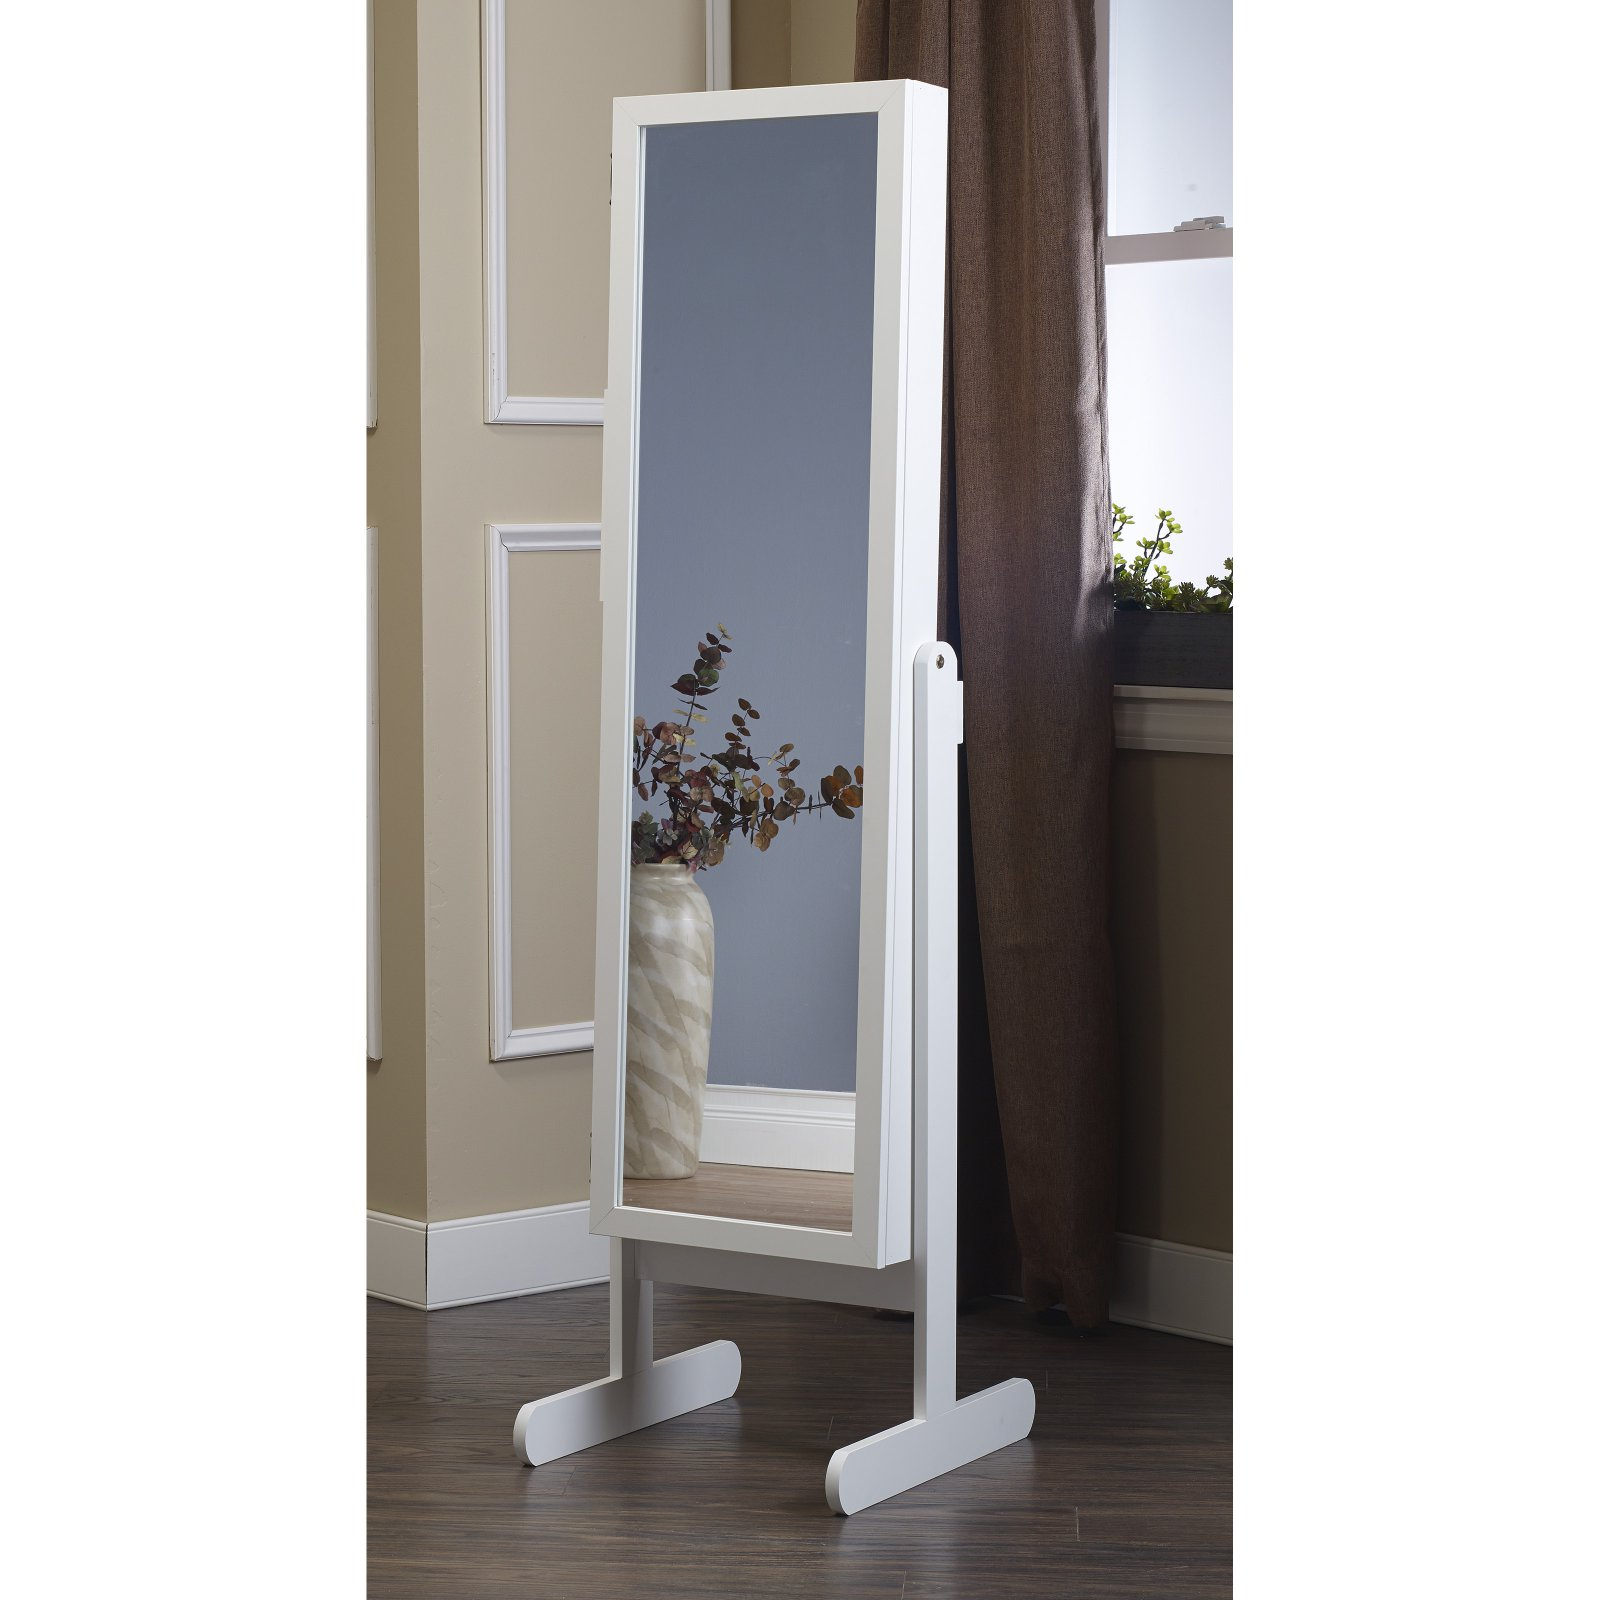 Mirrotek Plaza Astoria Free Standing Jewelry Armoire Cabinet Style Jewelry Armoire With